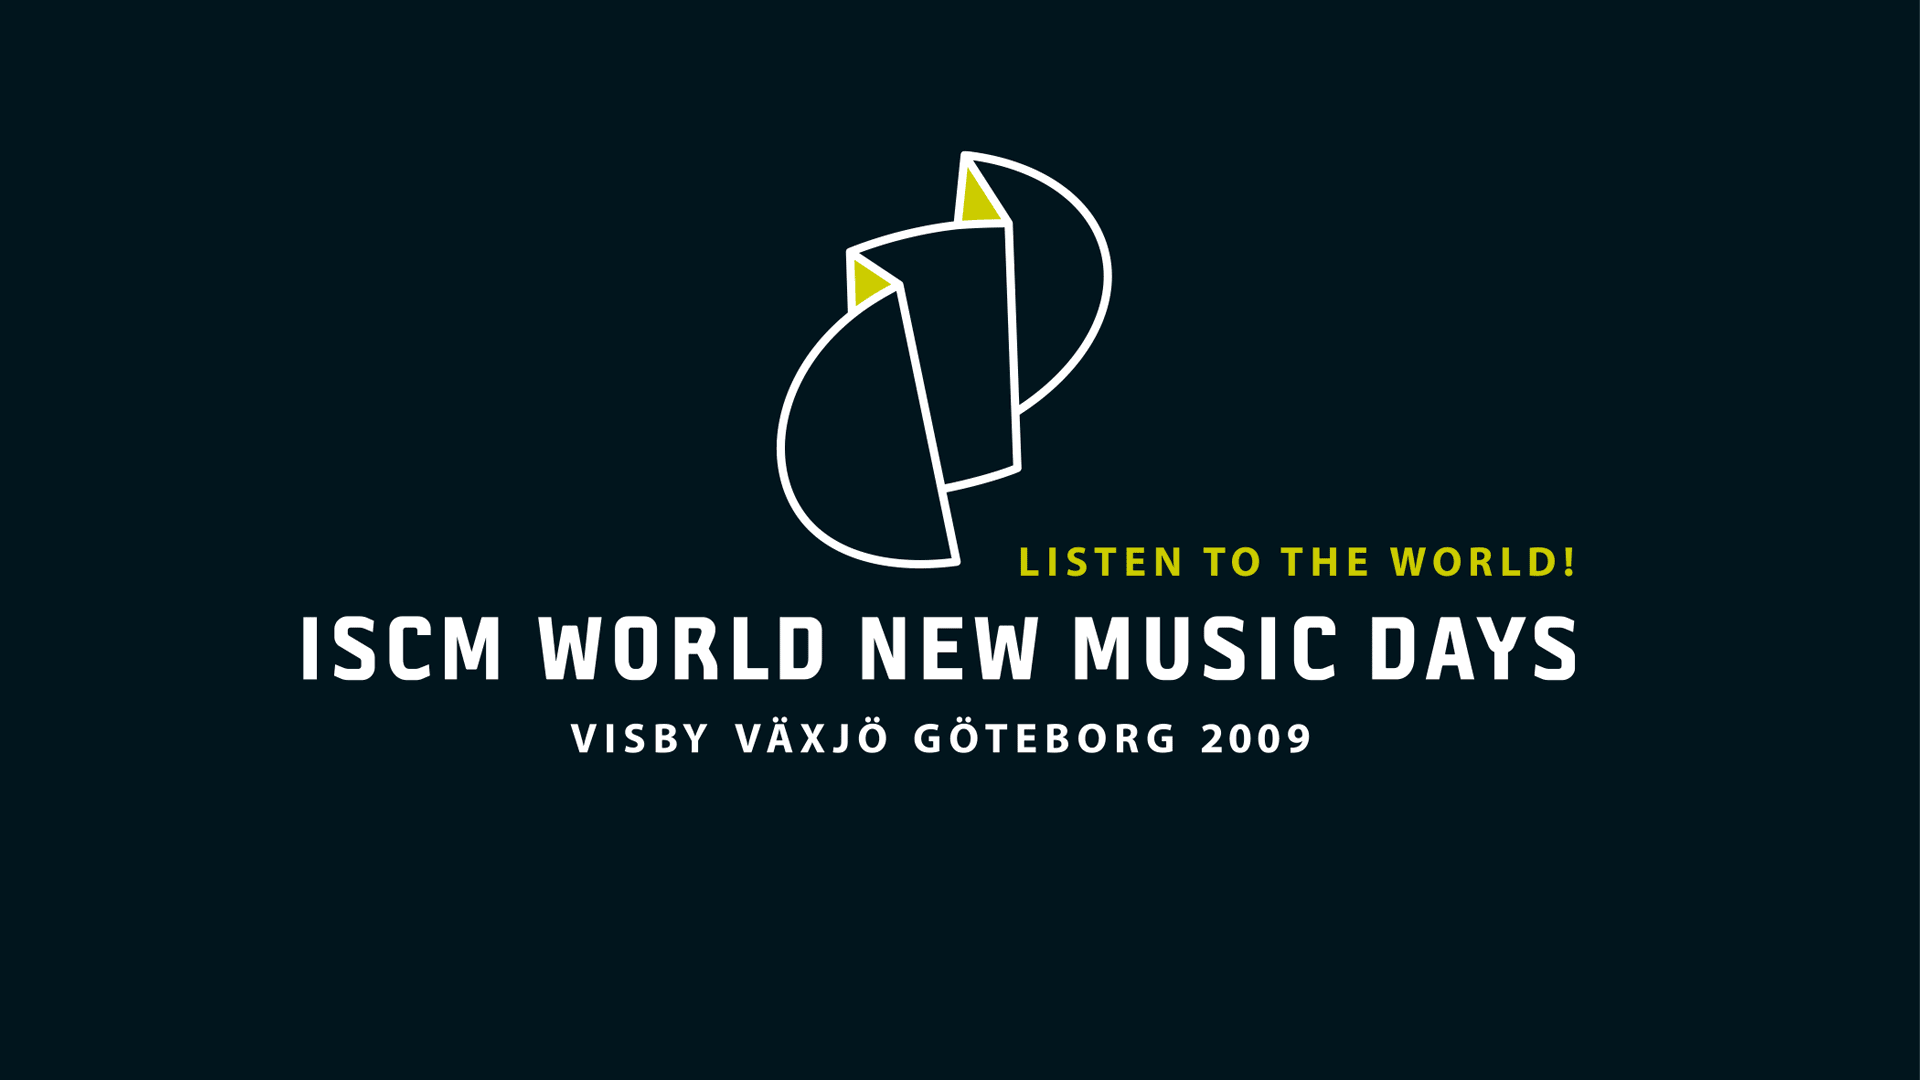 ISCM: Listen to the world 2009 - logotyp